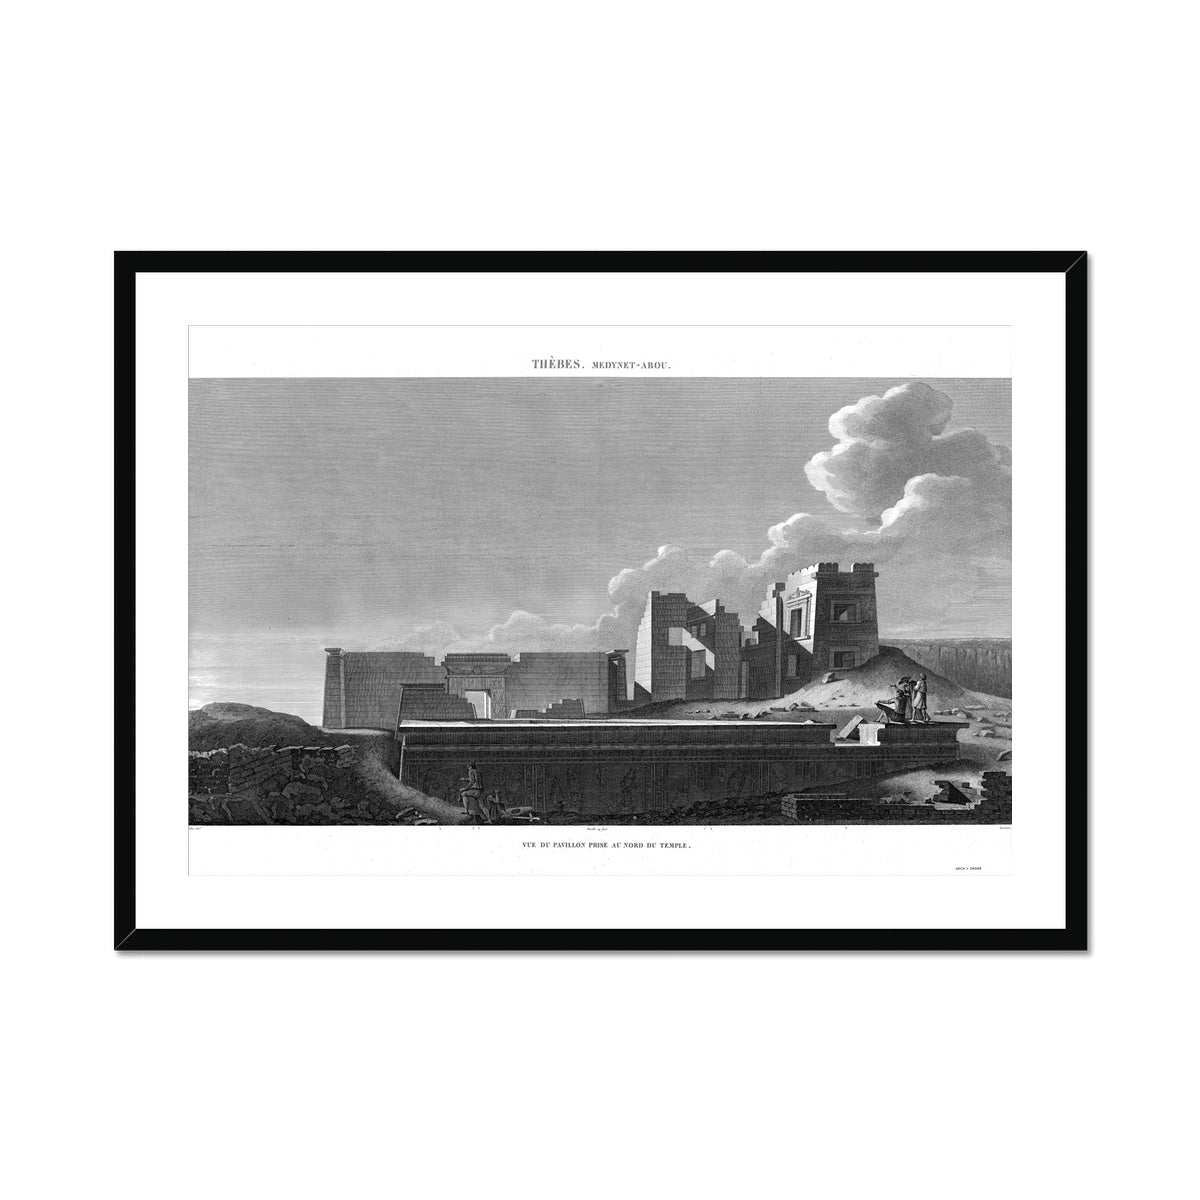 View of the Pavilion North of the Temple - Medynet-Abou - Thebes Egypt -  Framed & Mounted Print